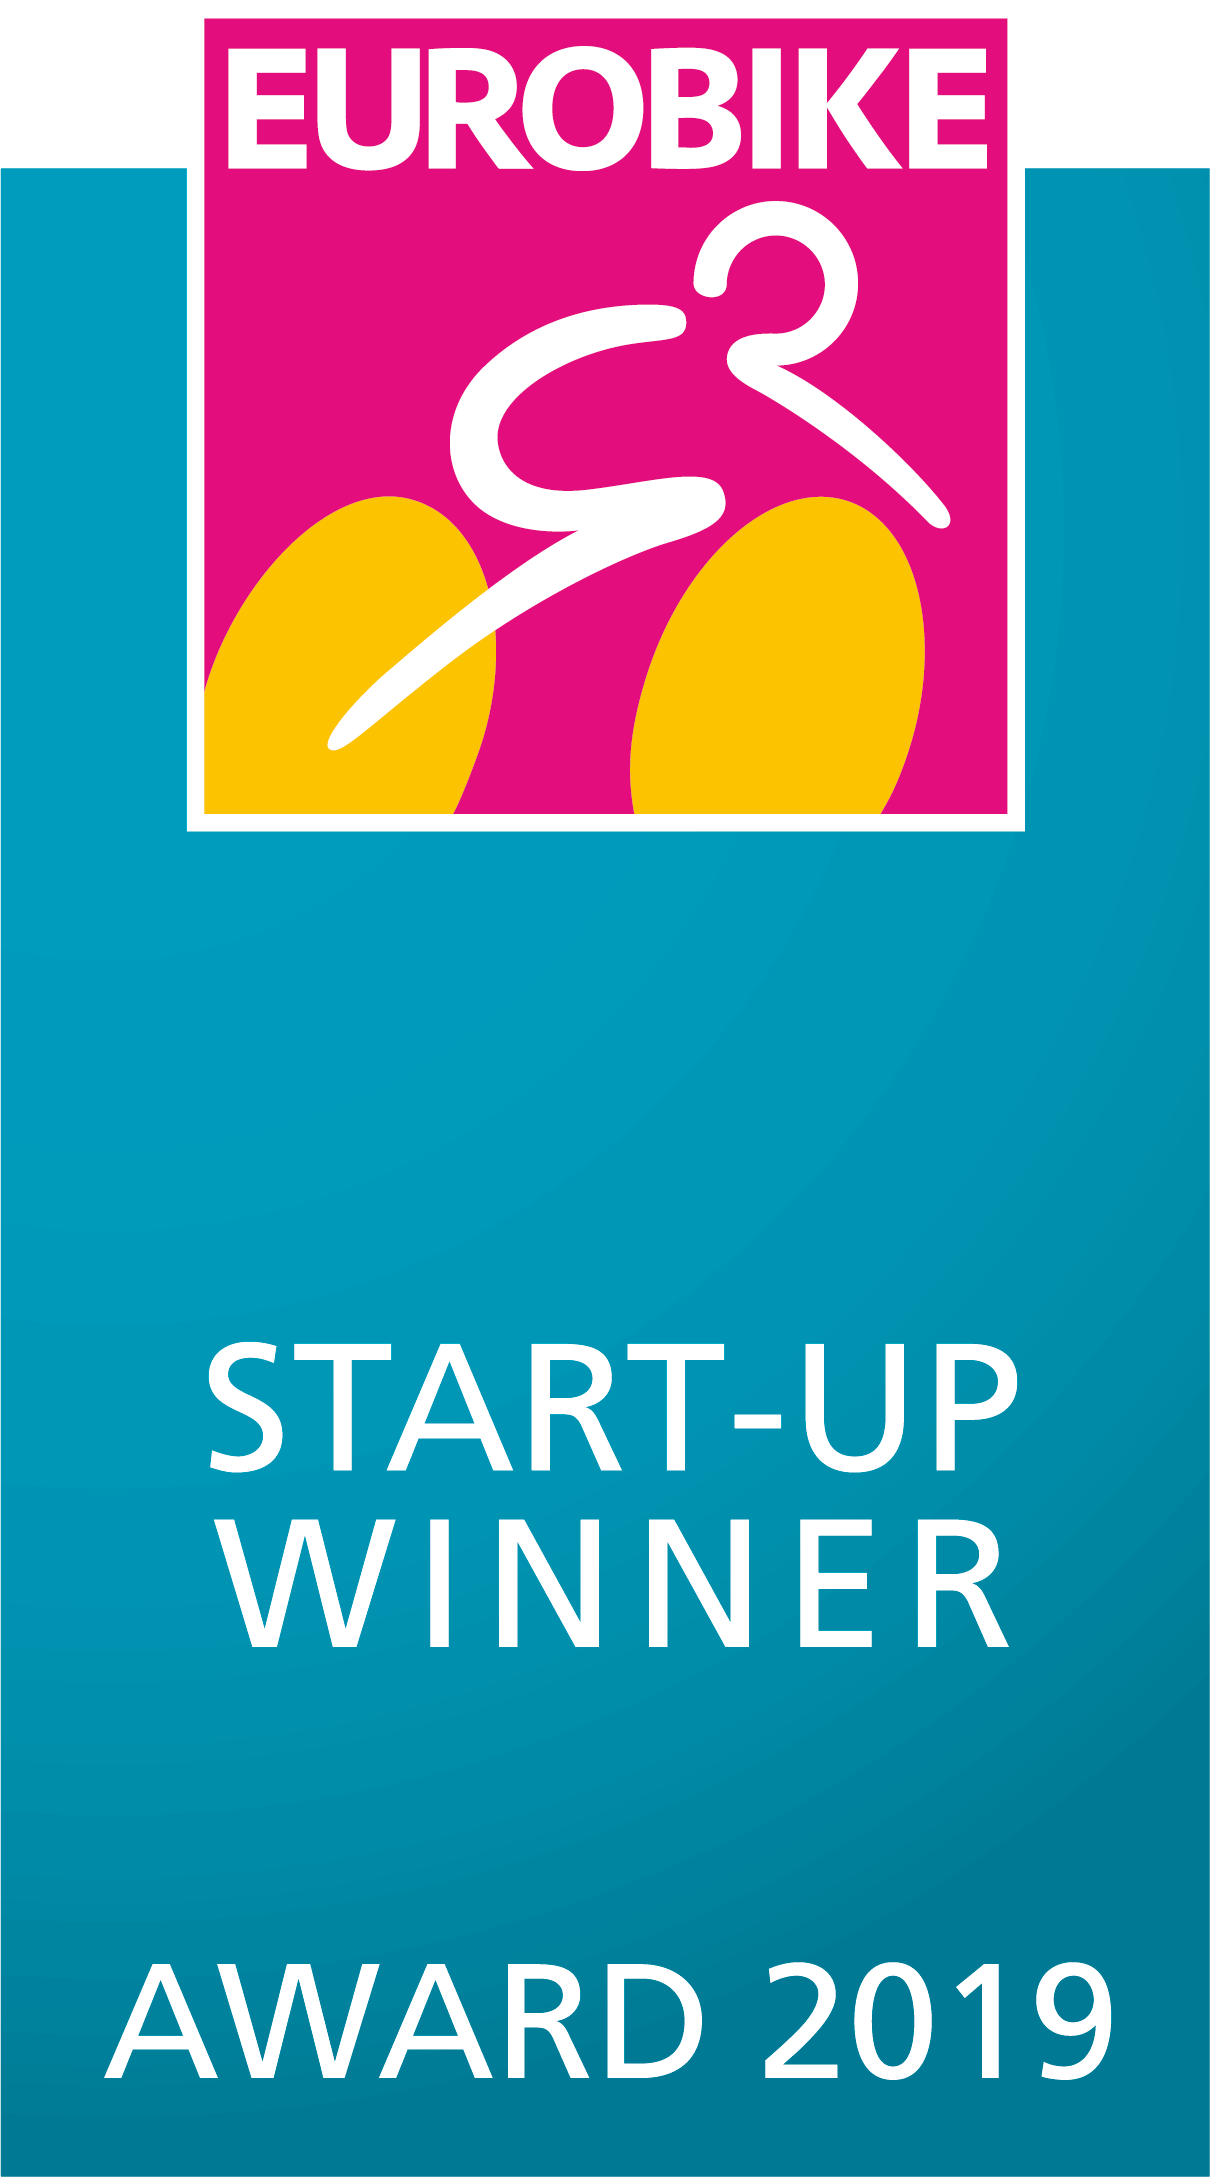 Eurobike start-up winner award